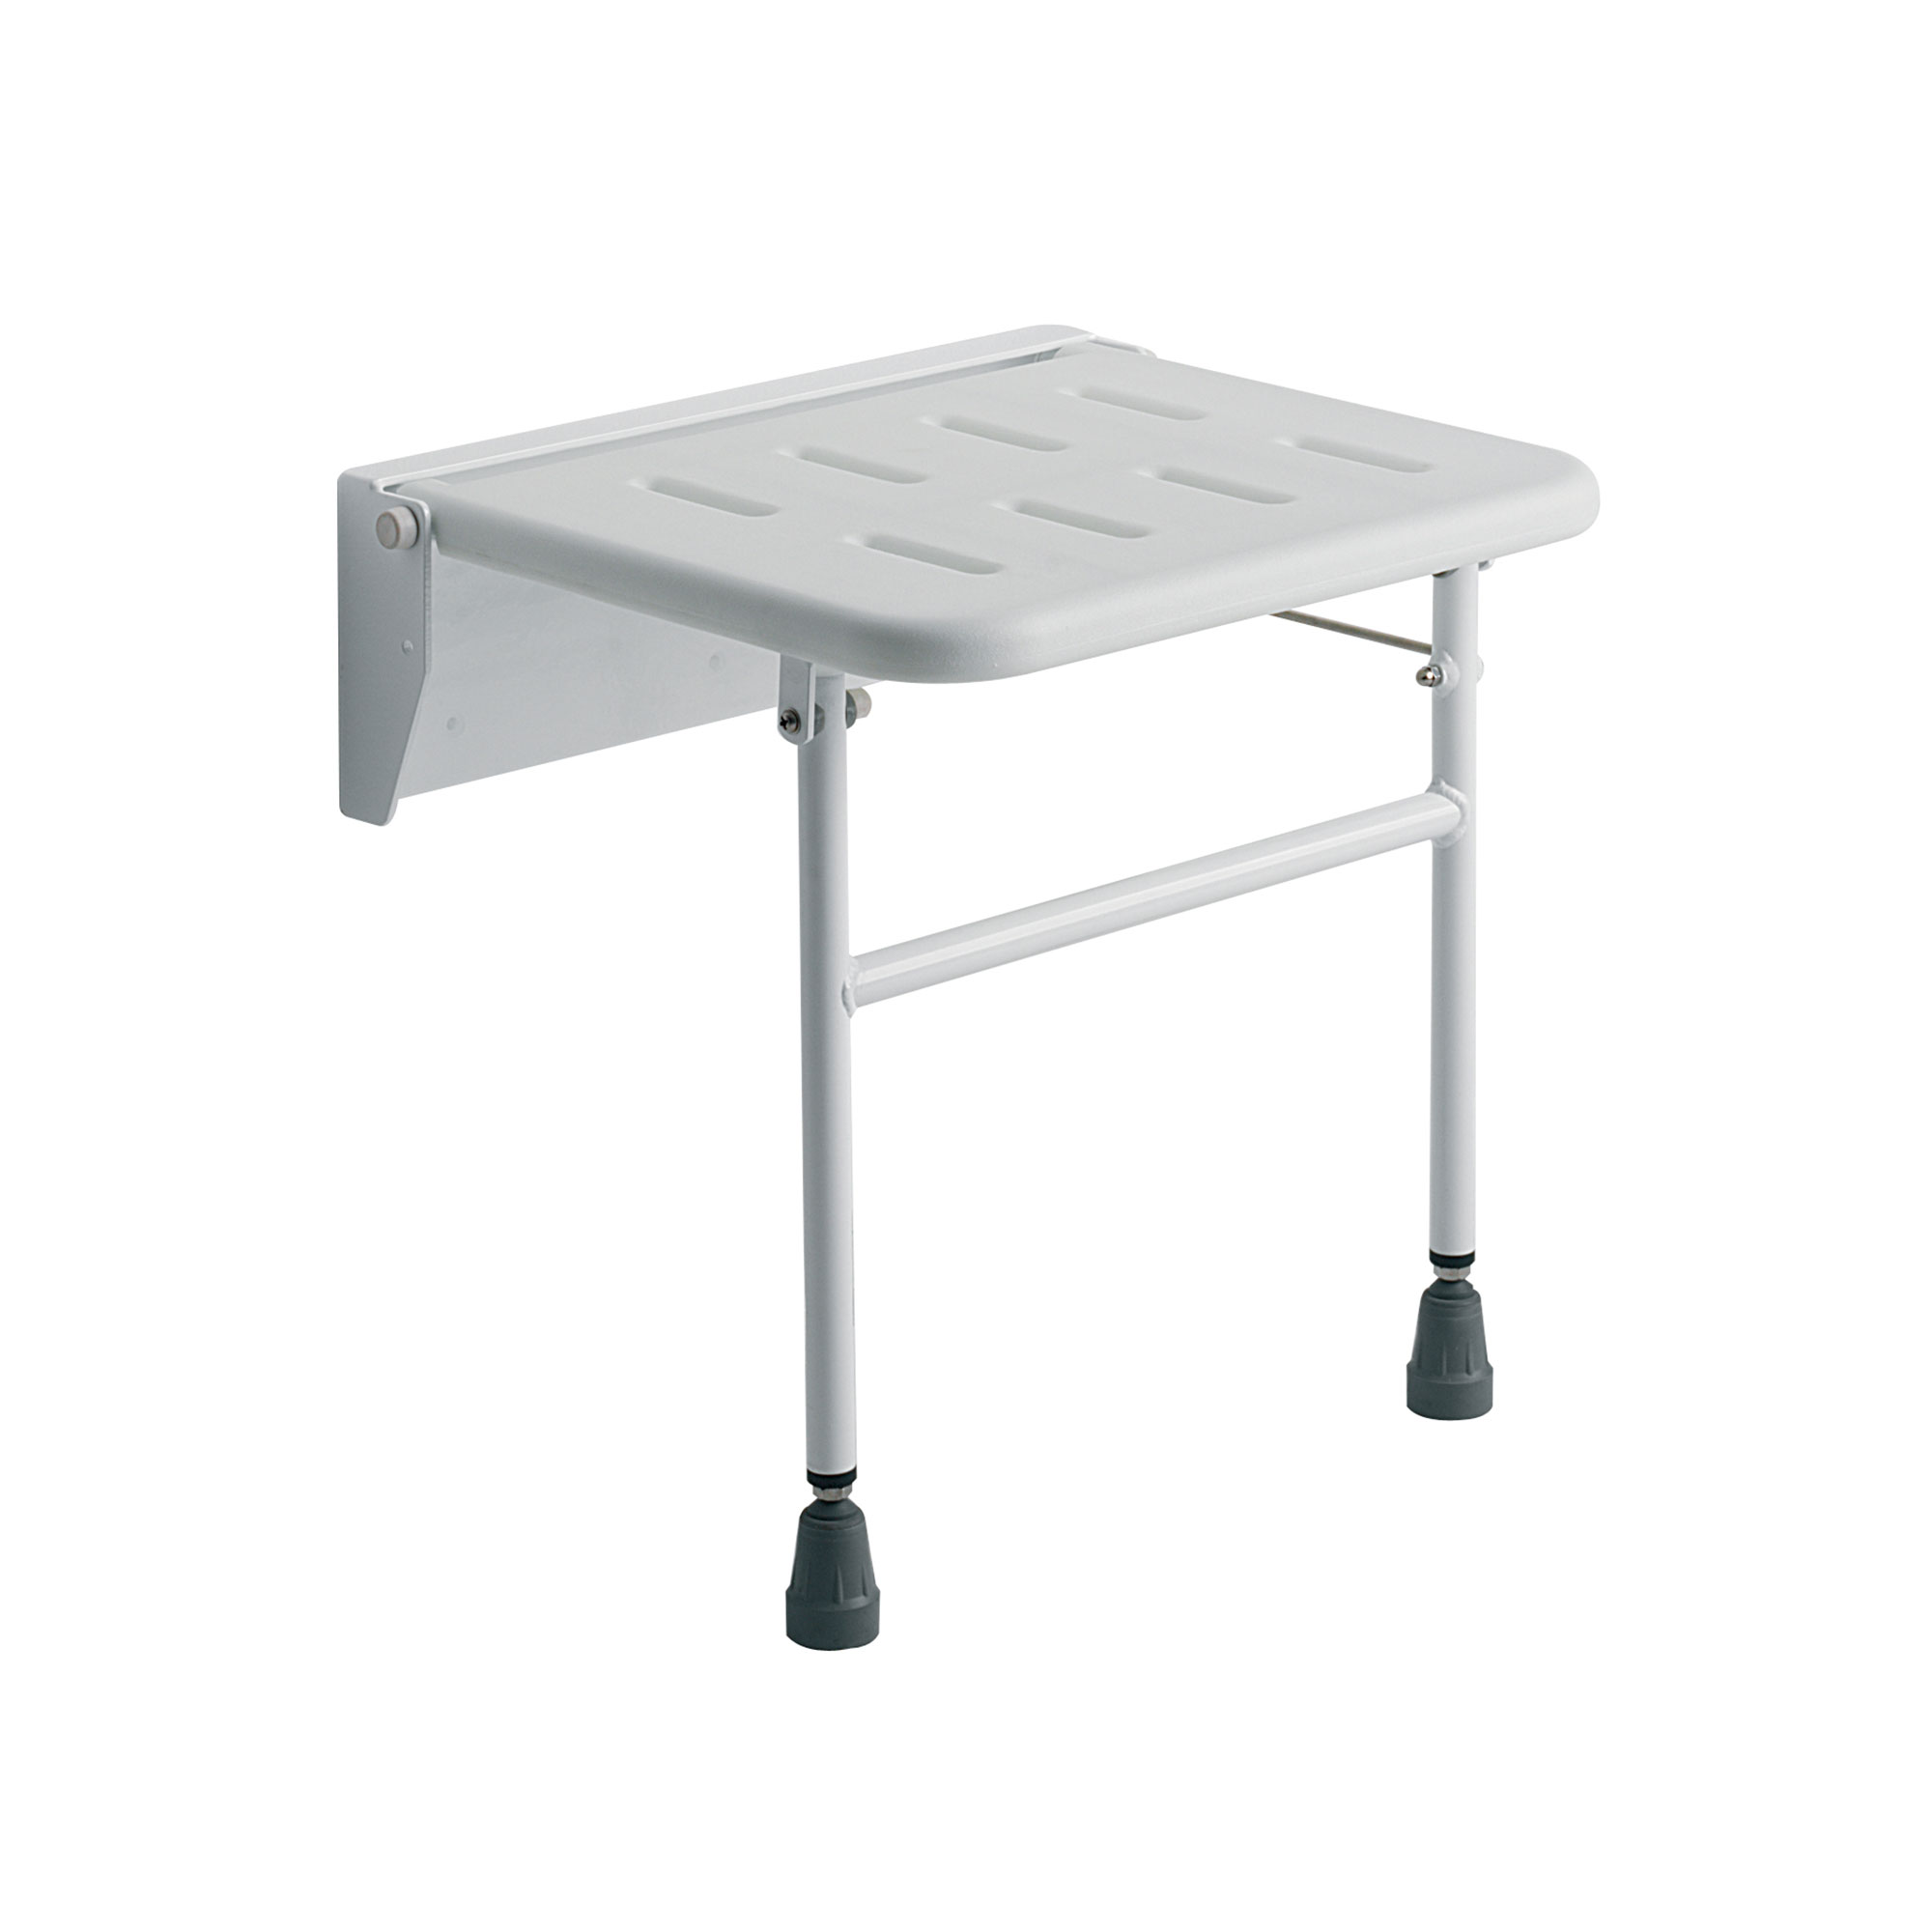 Elderly Bed Rails 4238 : Wall Mounted Shower Seat - Roma Medical